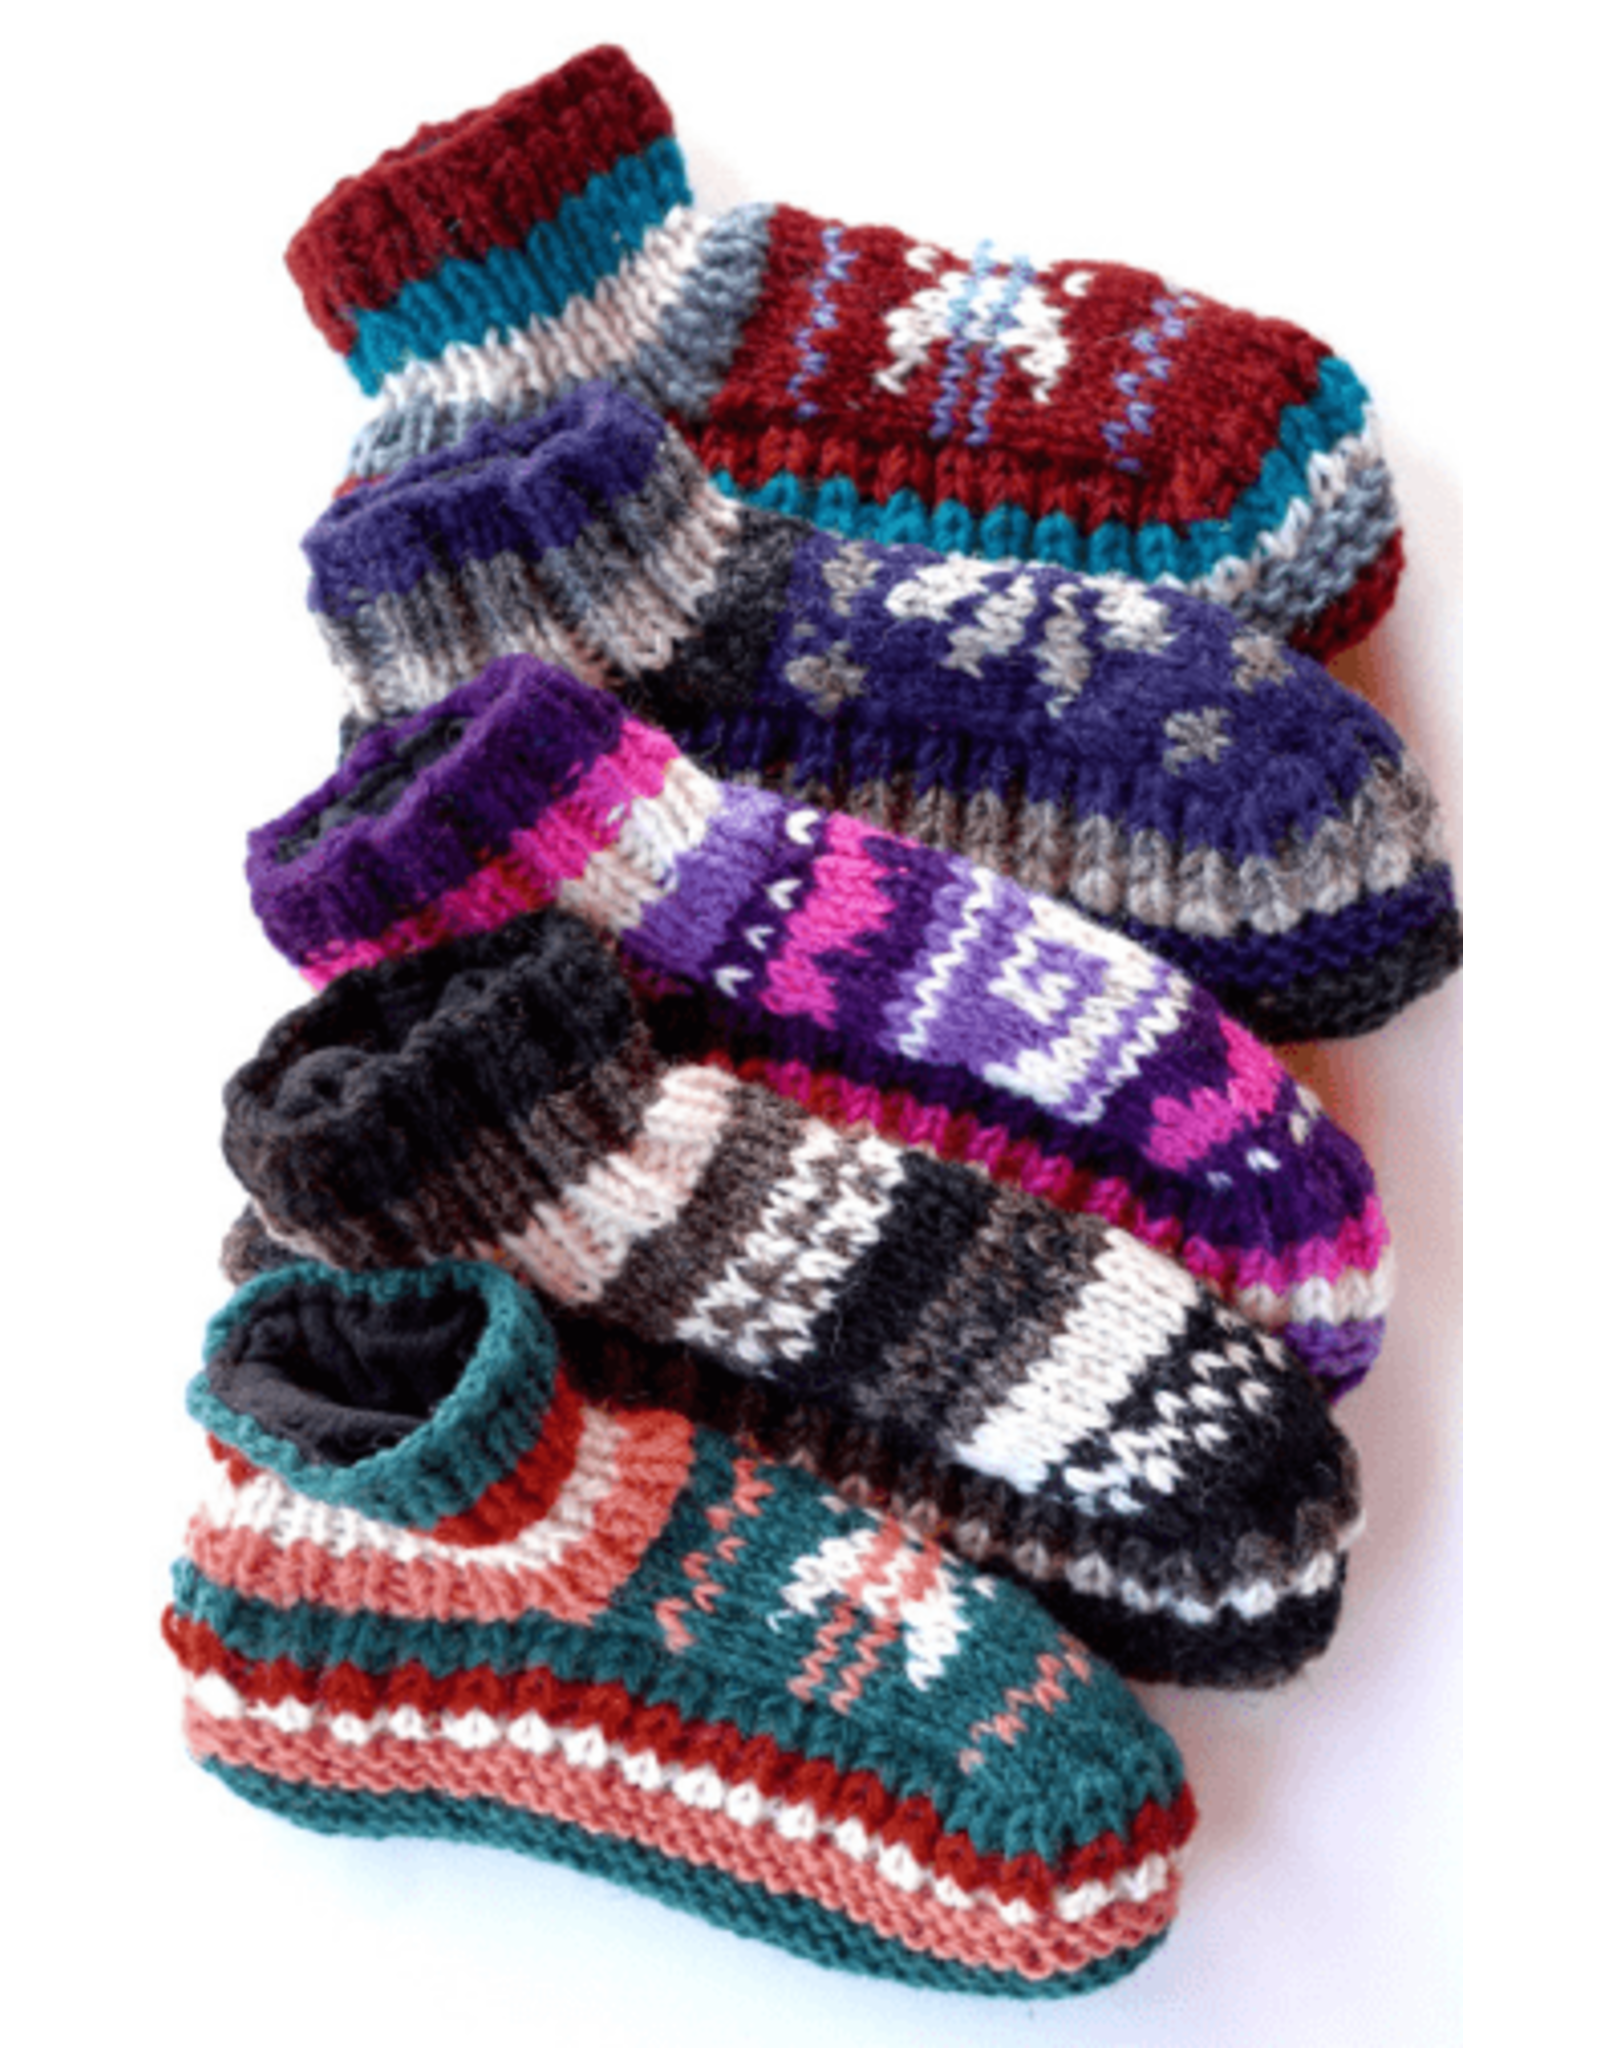 Ganesh Himal Knit Slipper, lined. Assorted.